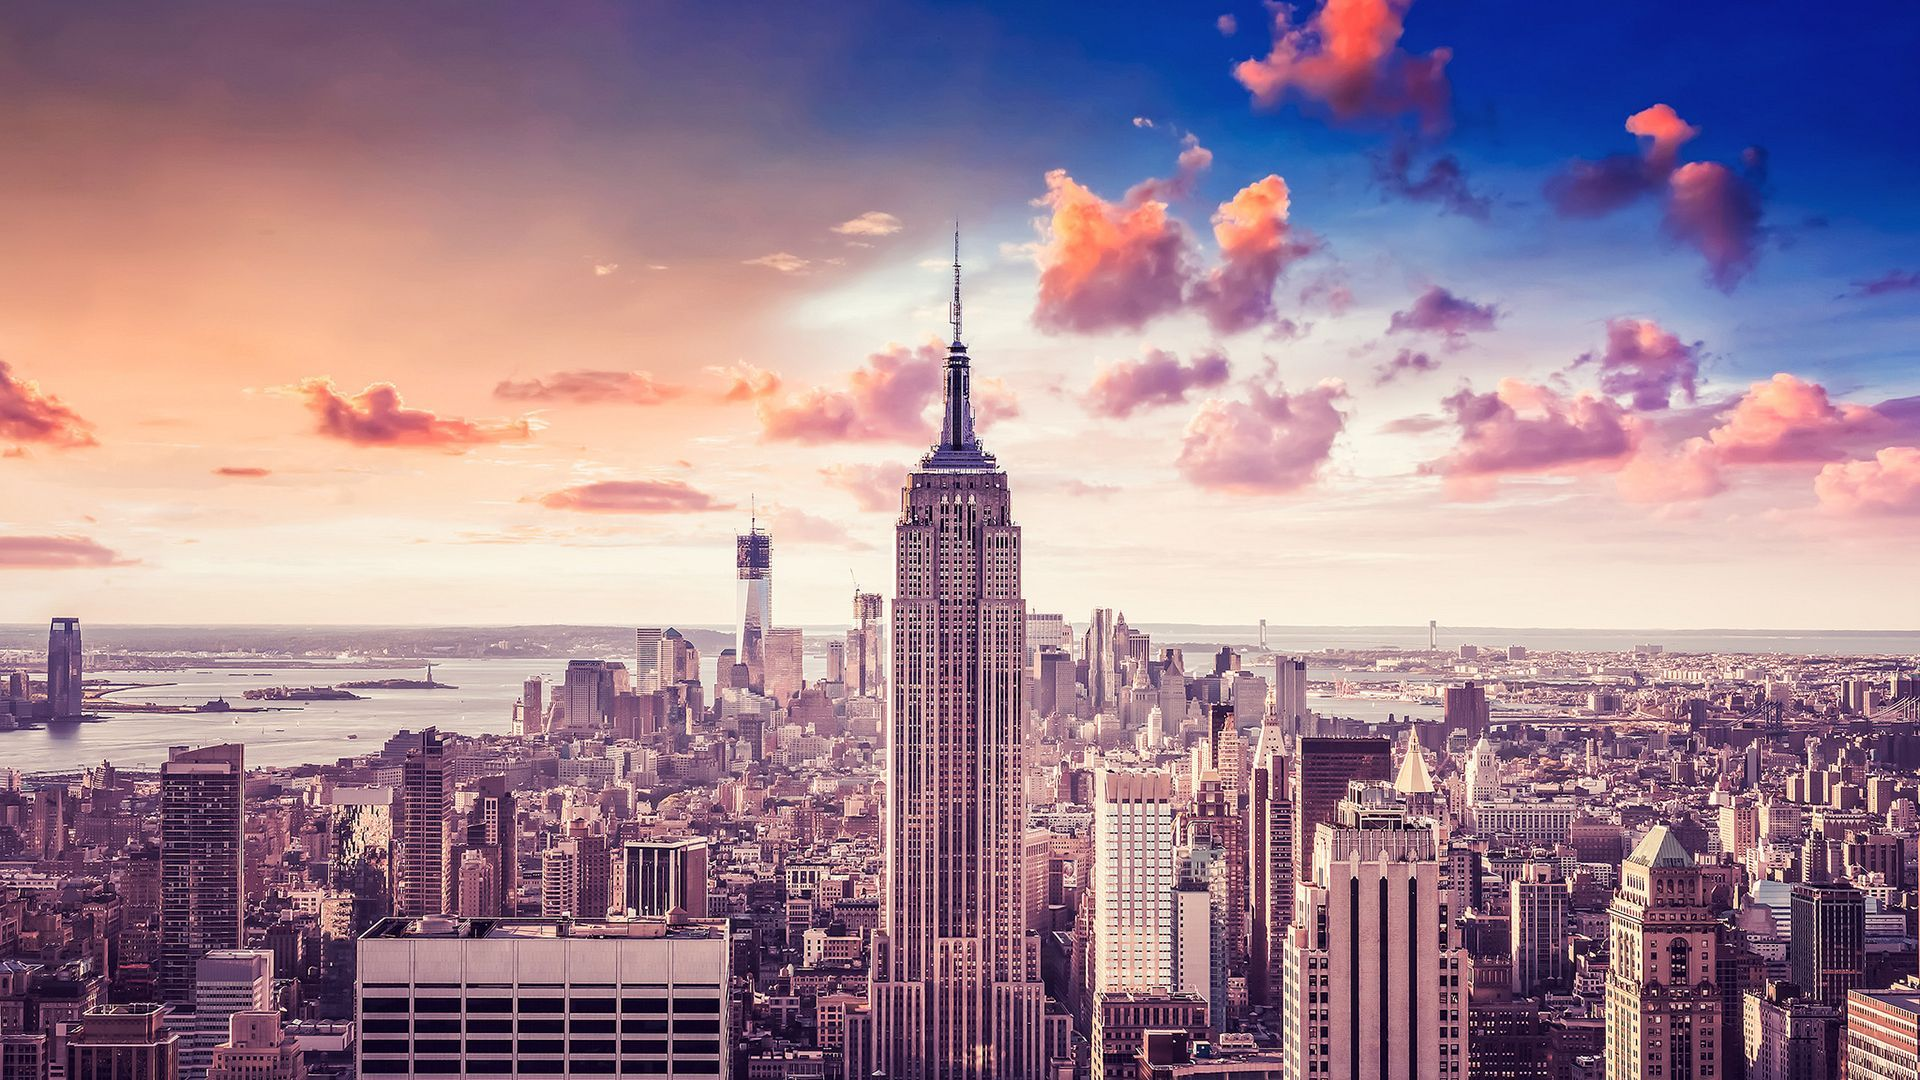 HD New York Wallpapers Are A Depiction Of Western Culture 1920x1080